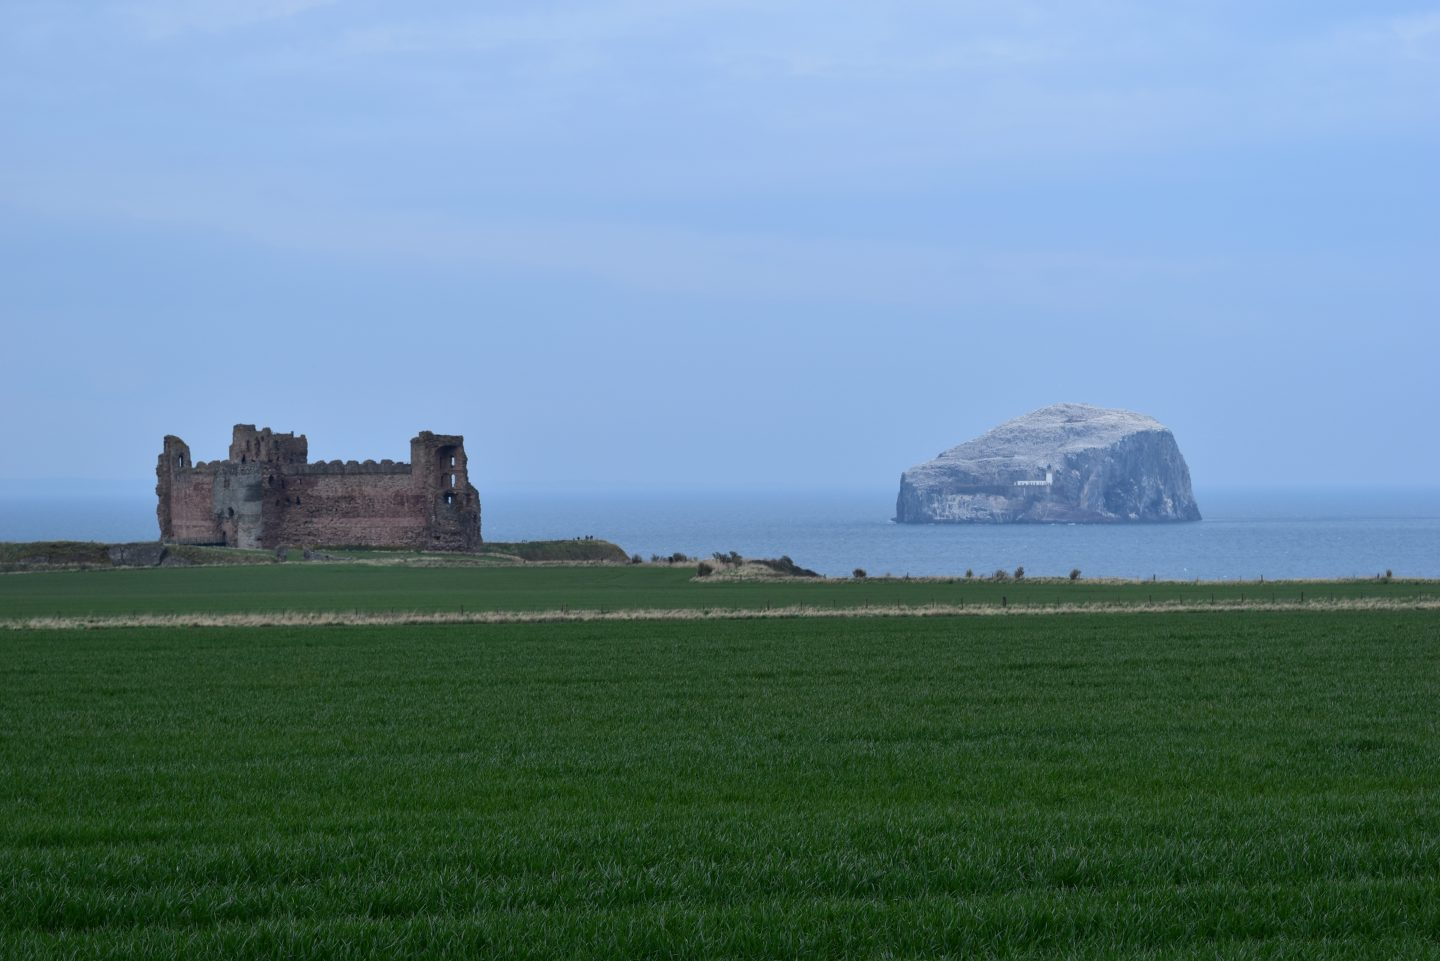 My Sunday Photo – The Castle and the Rock